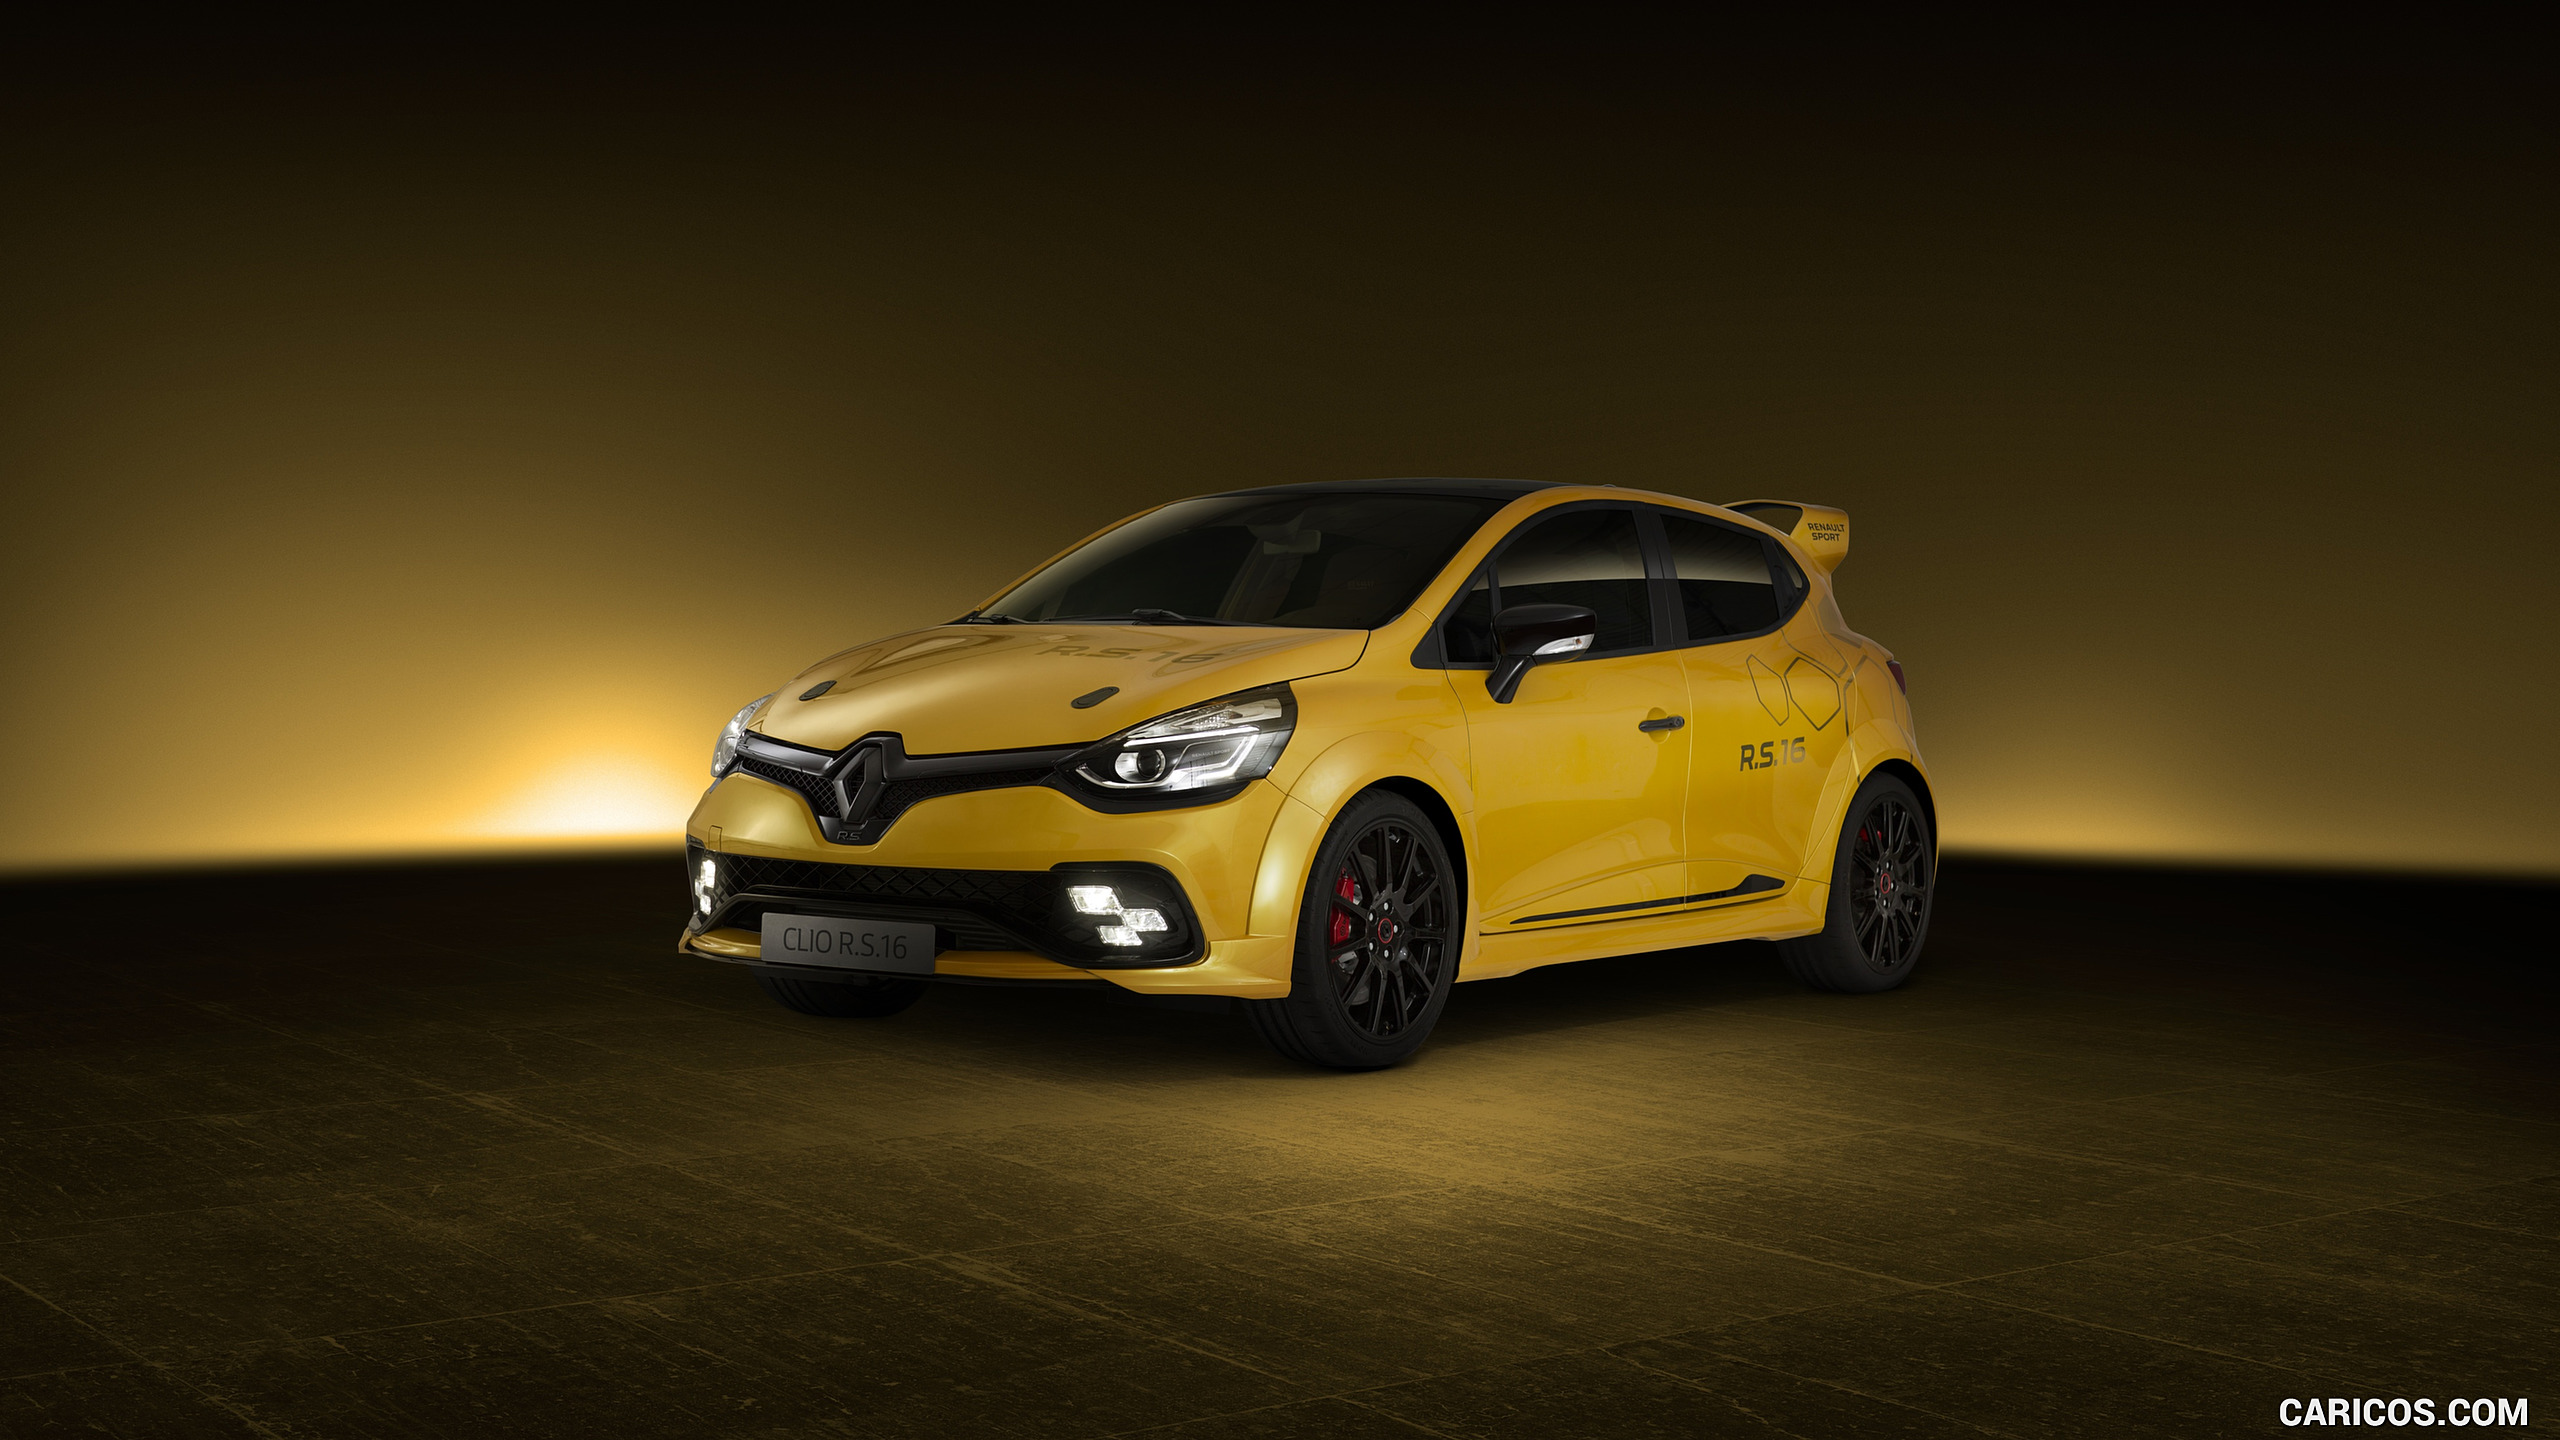 2560x1440 - Renault RS Wallpapers 32